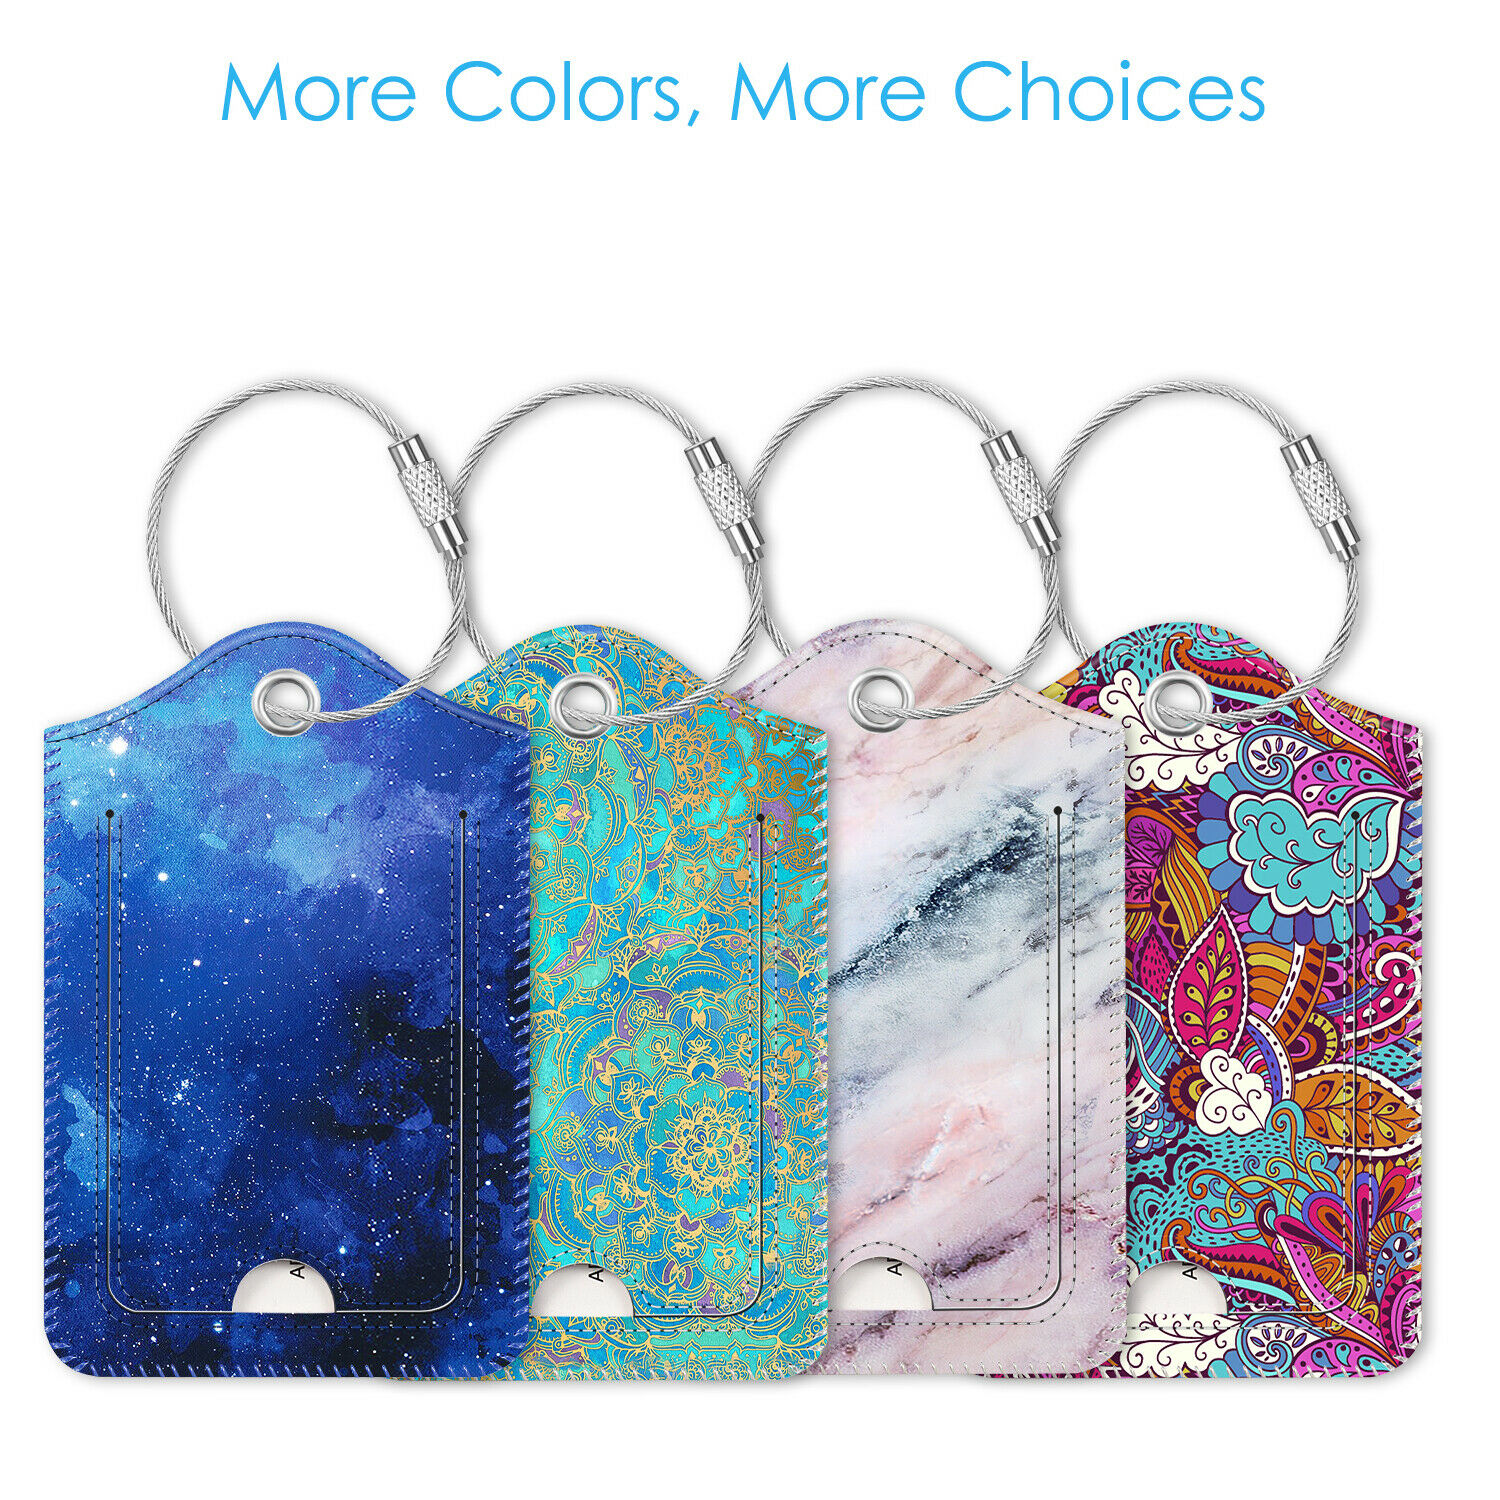 2 Pcs Luggage Tags Name Card Holder Travel Bag Suitcase Backpack Labels